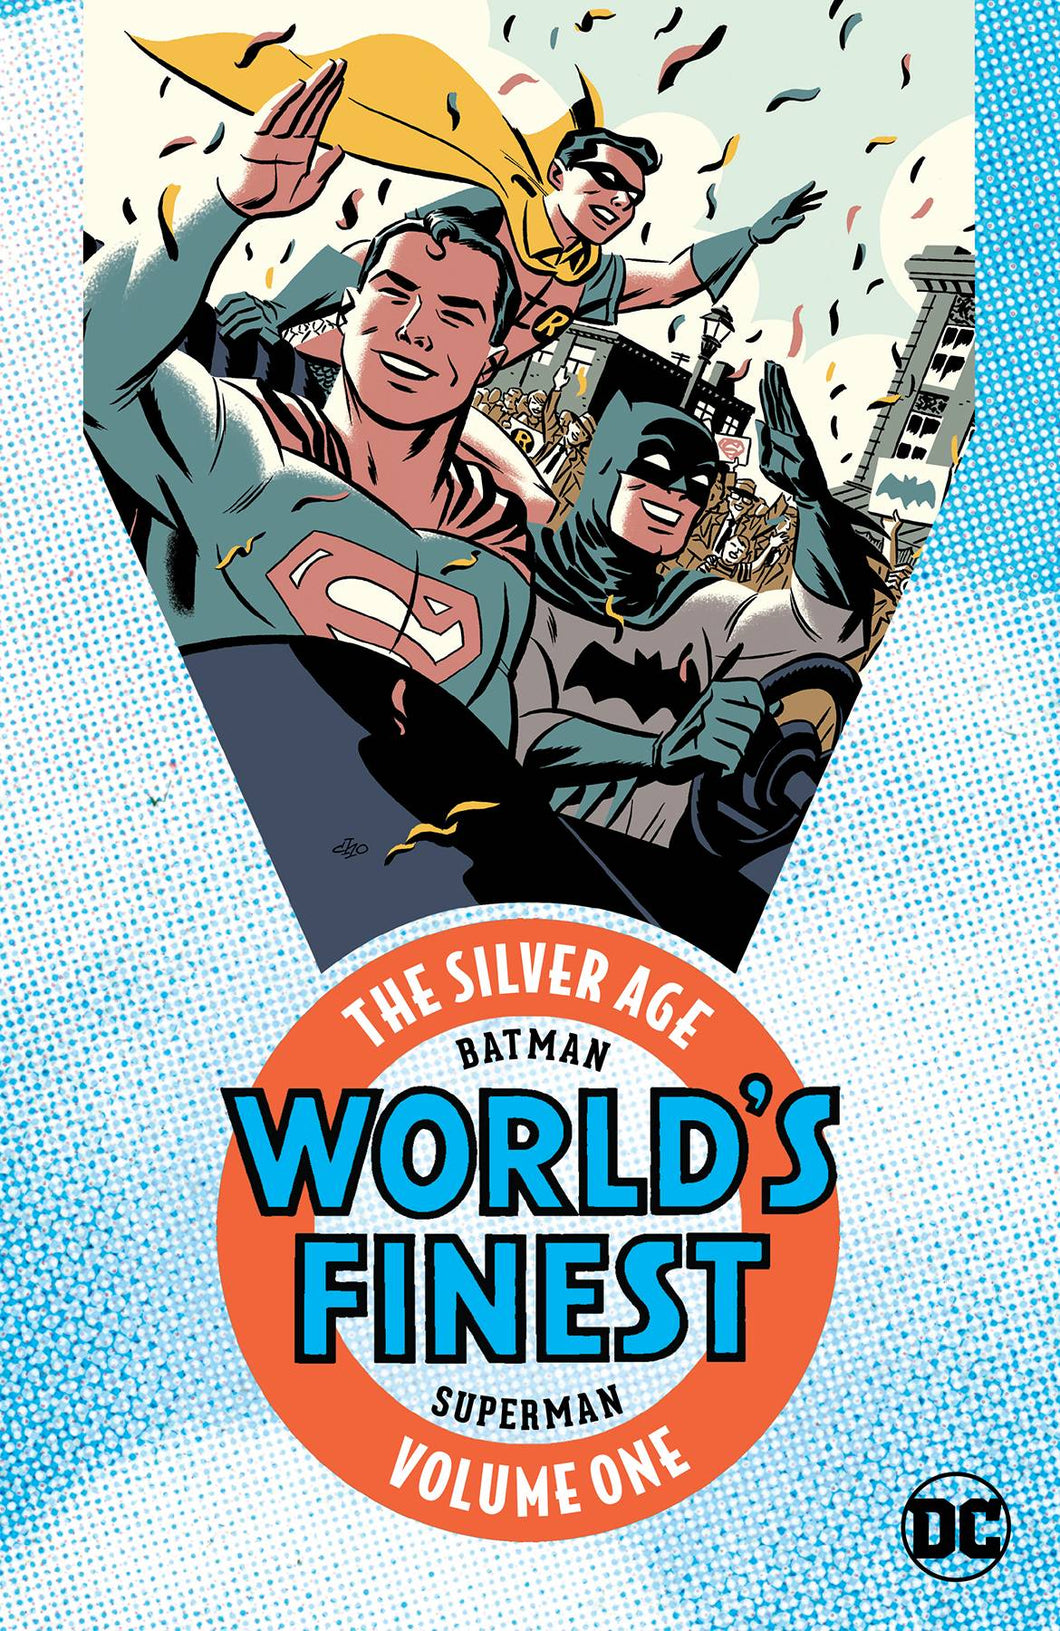 BATMAN & SUPERMAN IN WORLDS FINEST THE SILVER AGE TP VOL 01